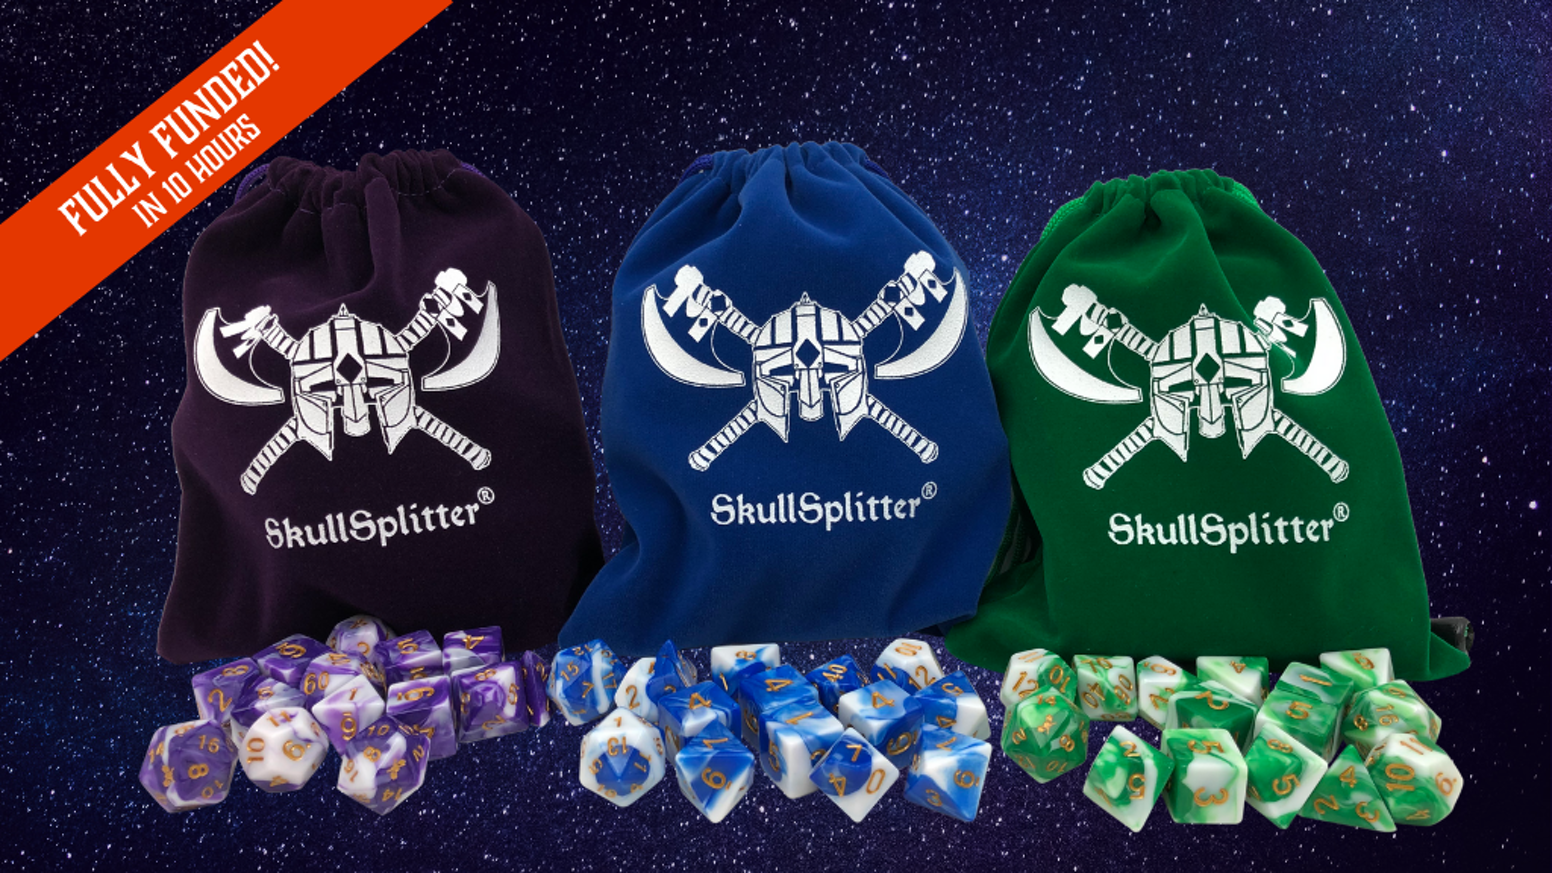 Swirled Polyhedral 11 piece dice sets for RPGs and other tabletop games.